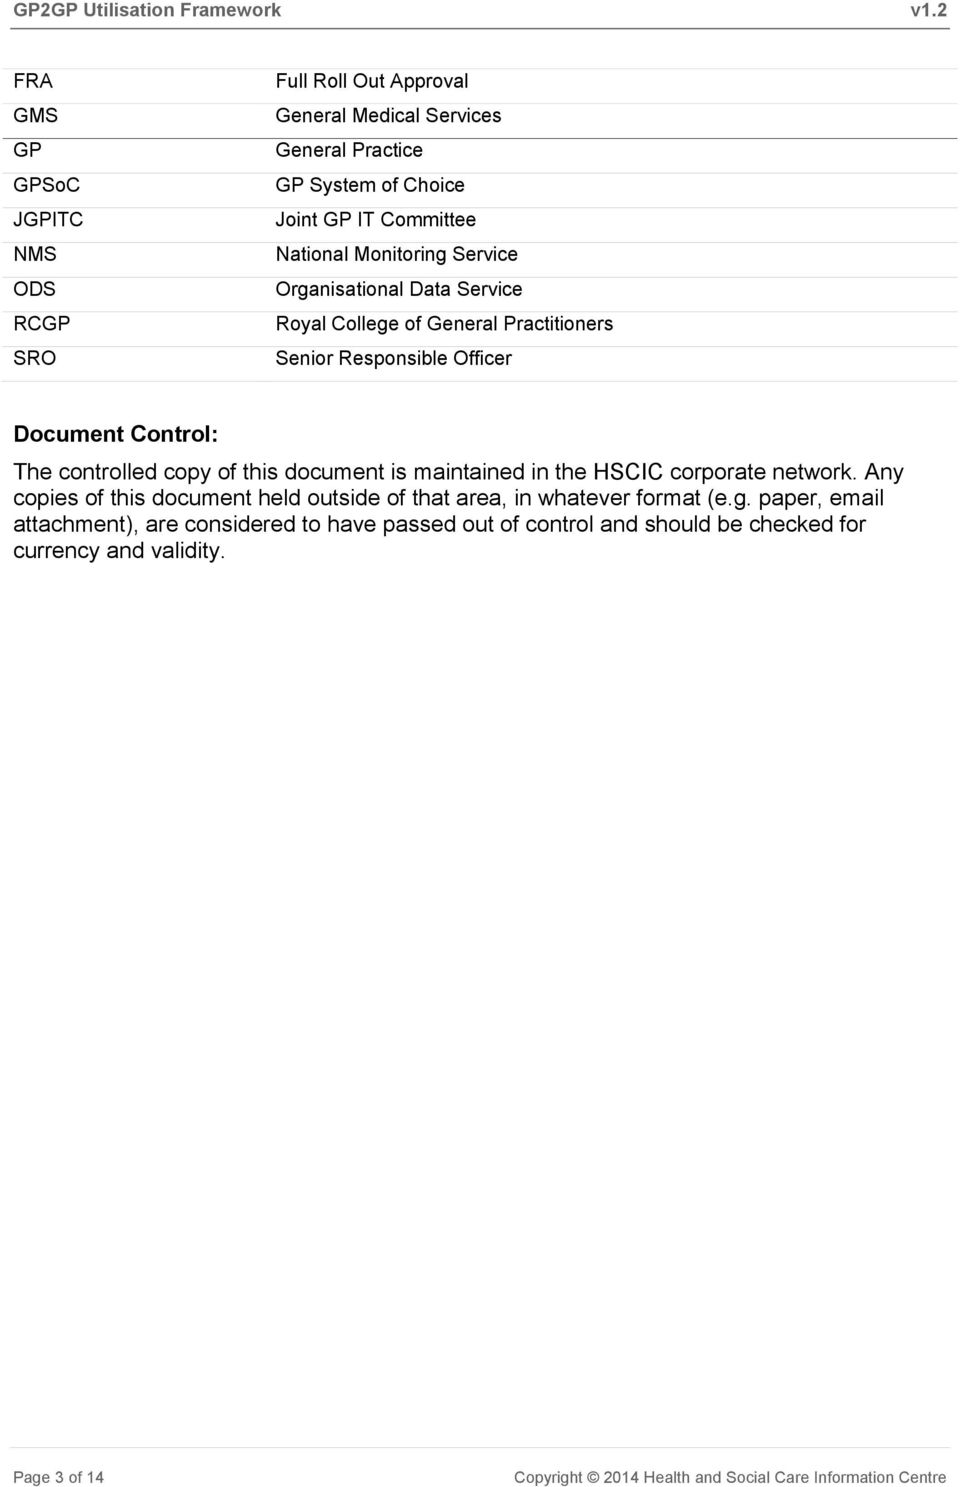 Control: The controlled copy of this document is maintained in the HSCIC corporate network.